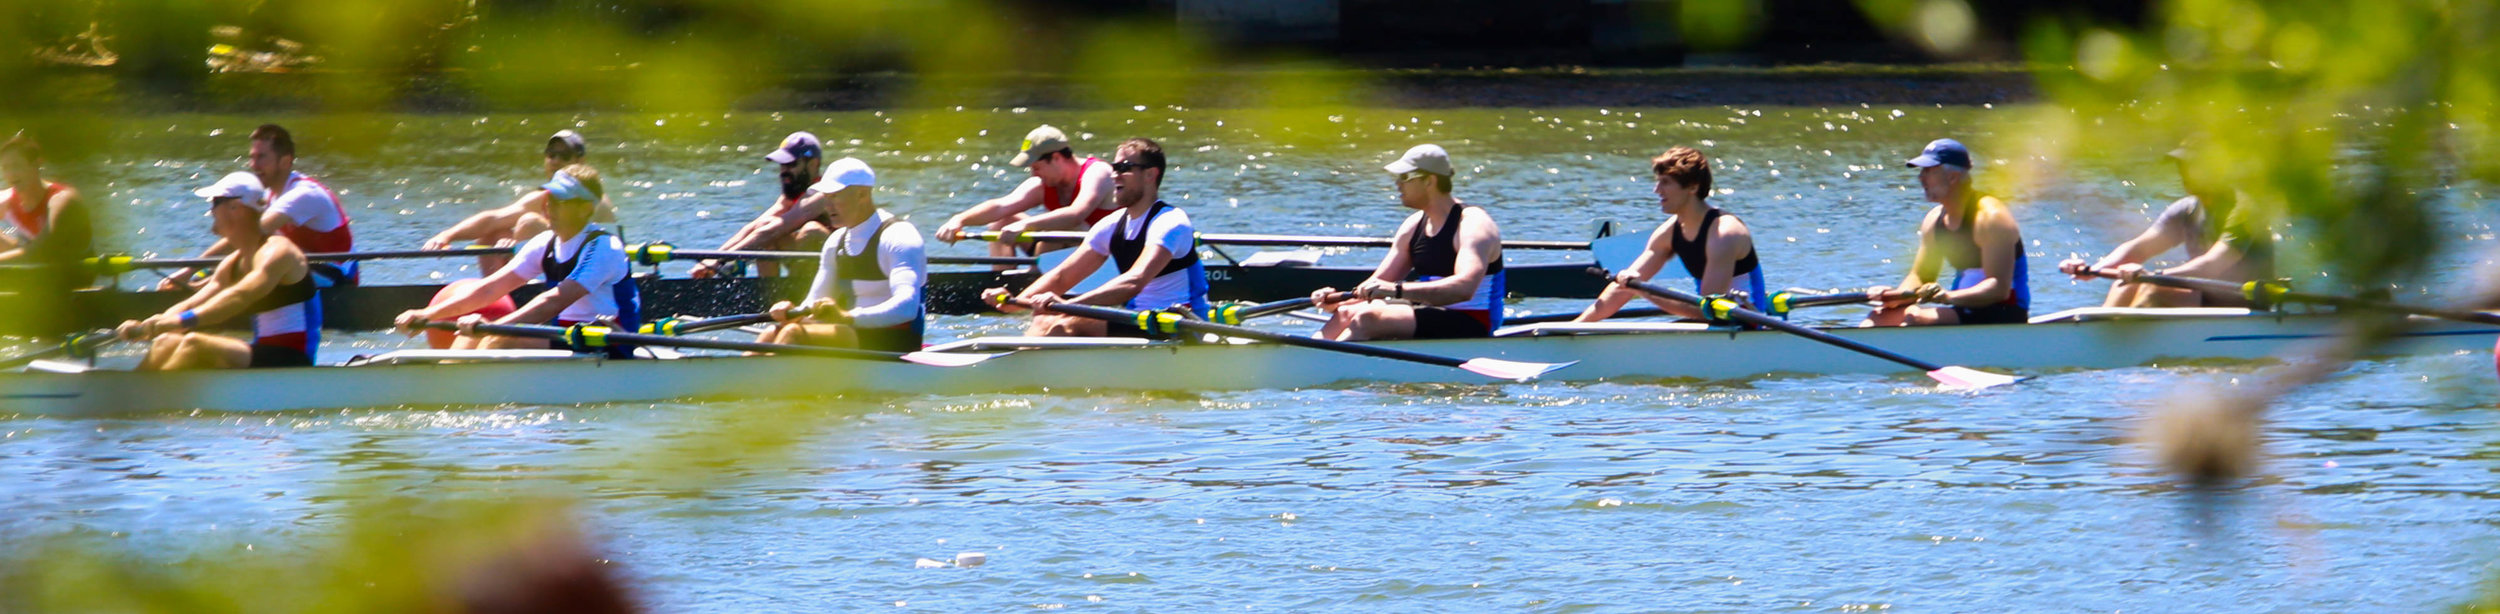 Mens Masters Eight  |  Texas State Championships  |  Austin, Texas, US   |  April 2018